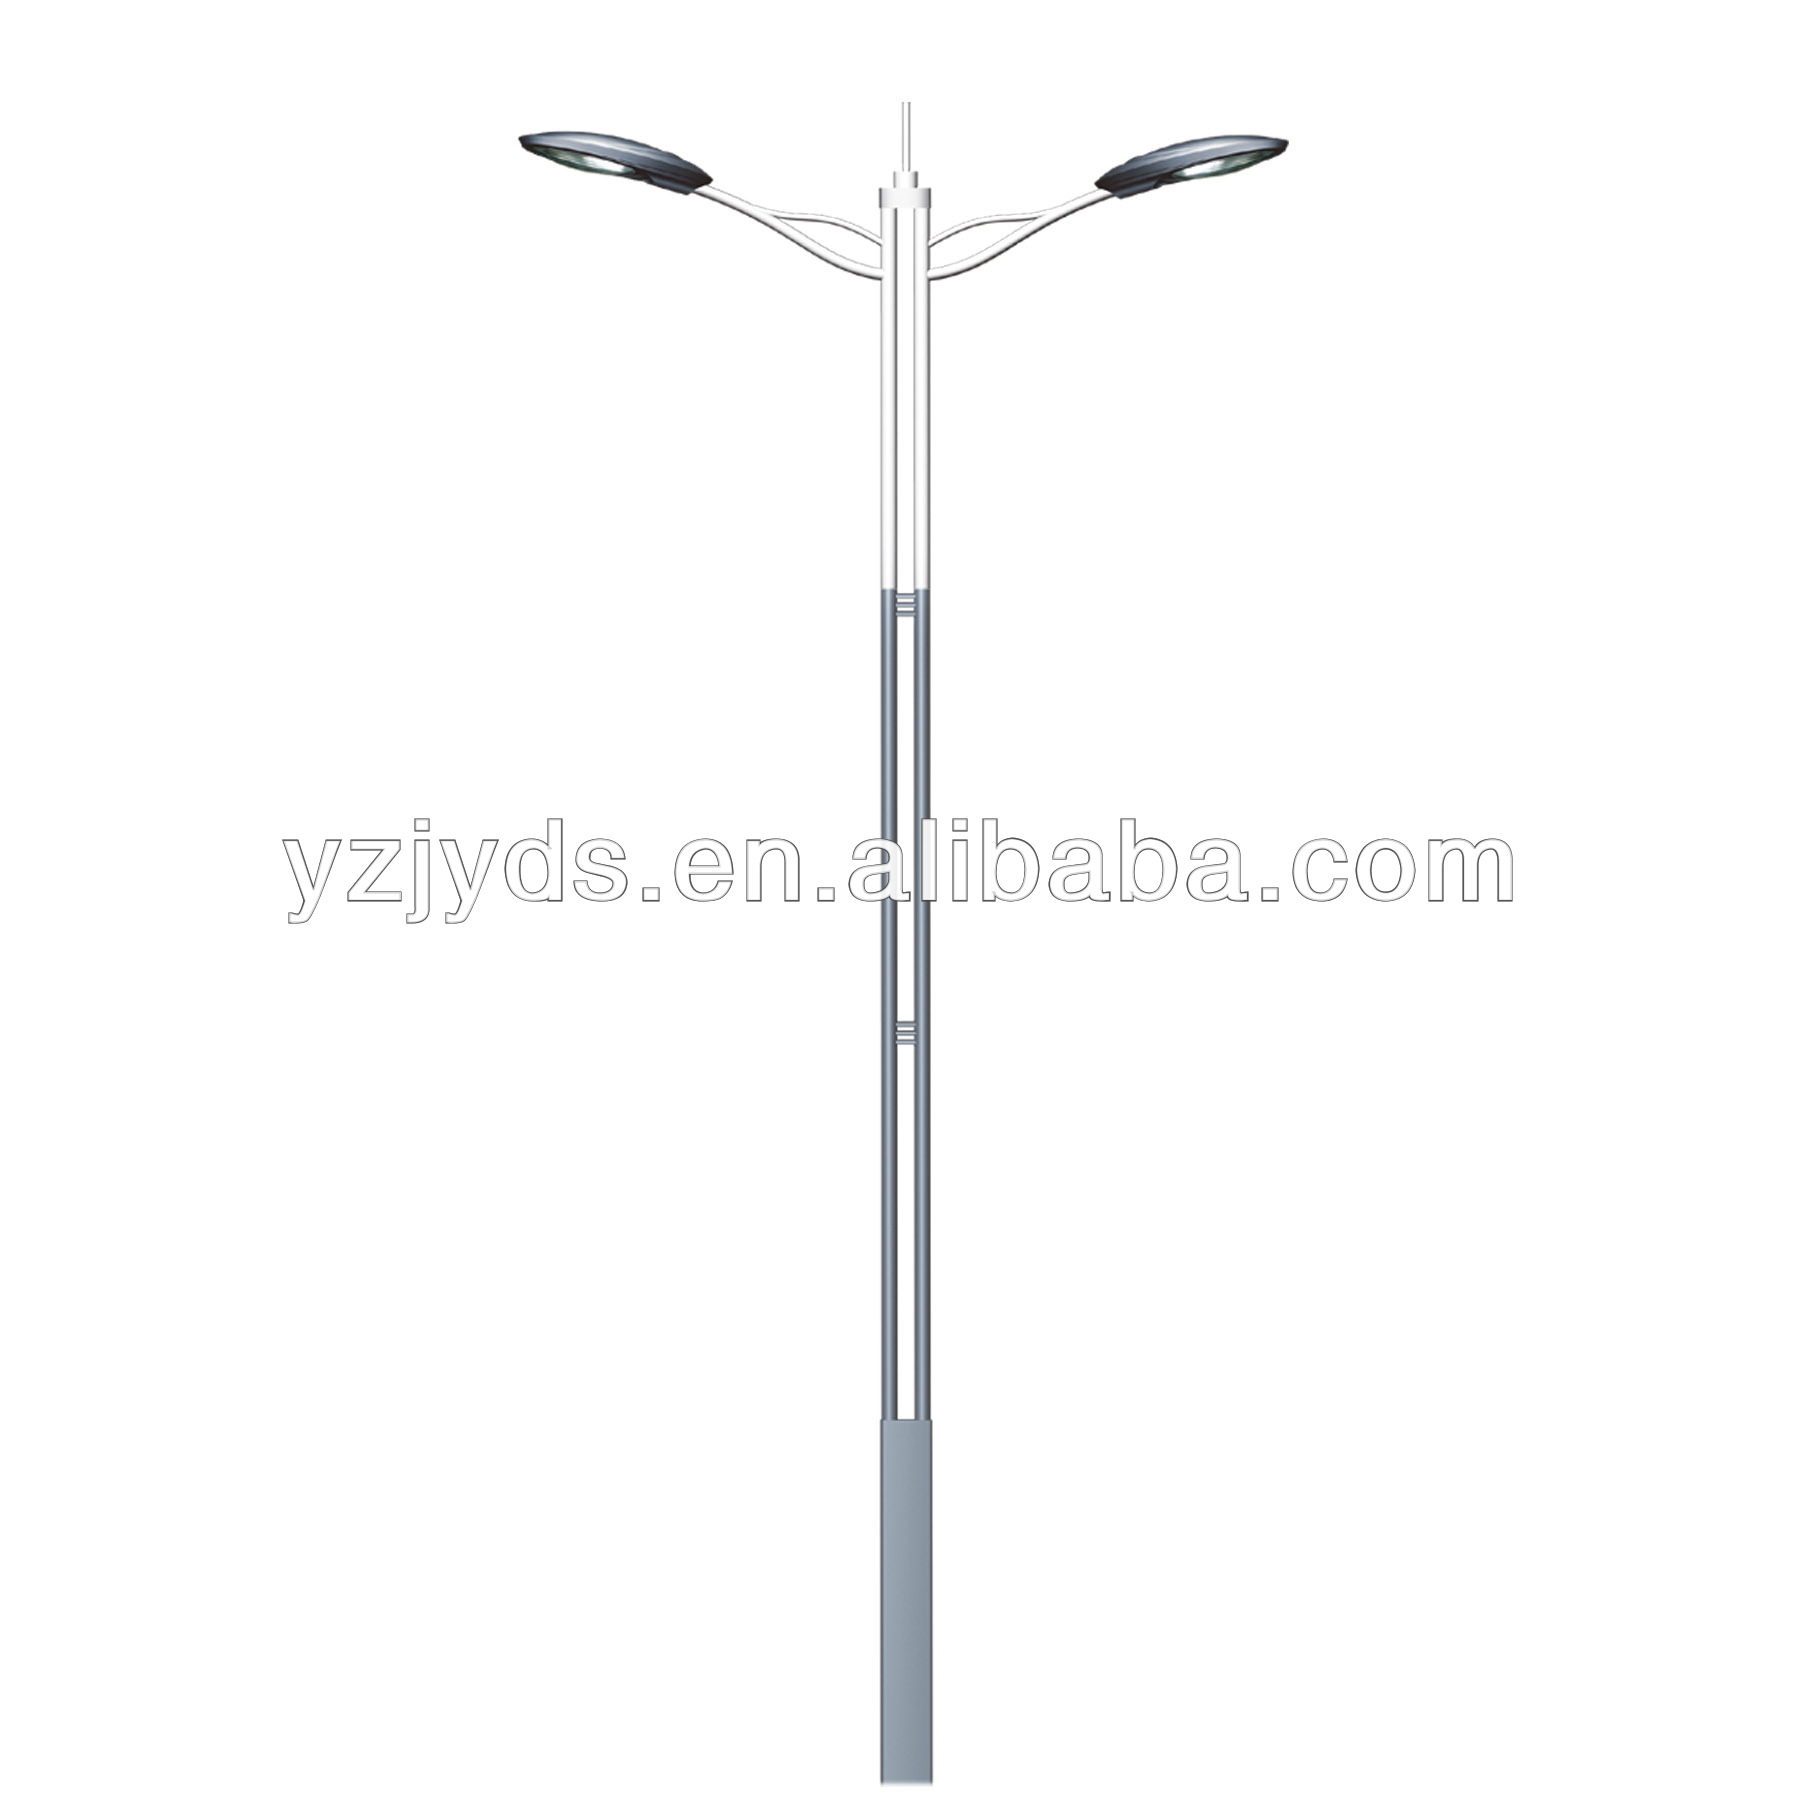 Street Light Double Arm Pole With Drawing - Buy Double Arm Pole ... for Street Light Drawing  186ref